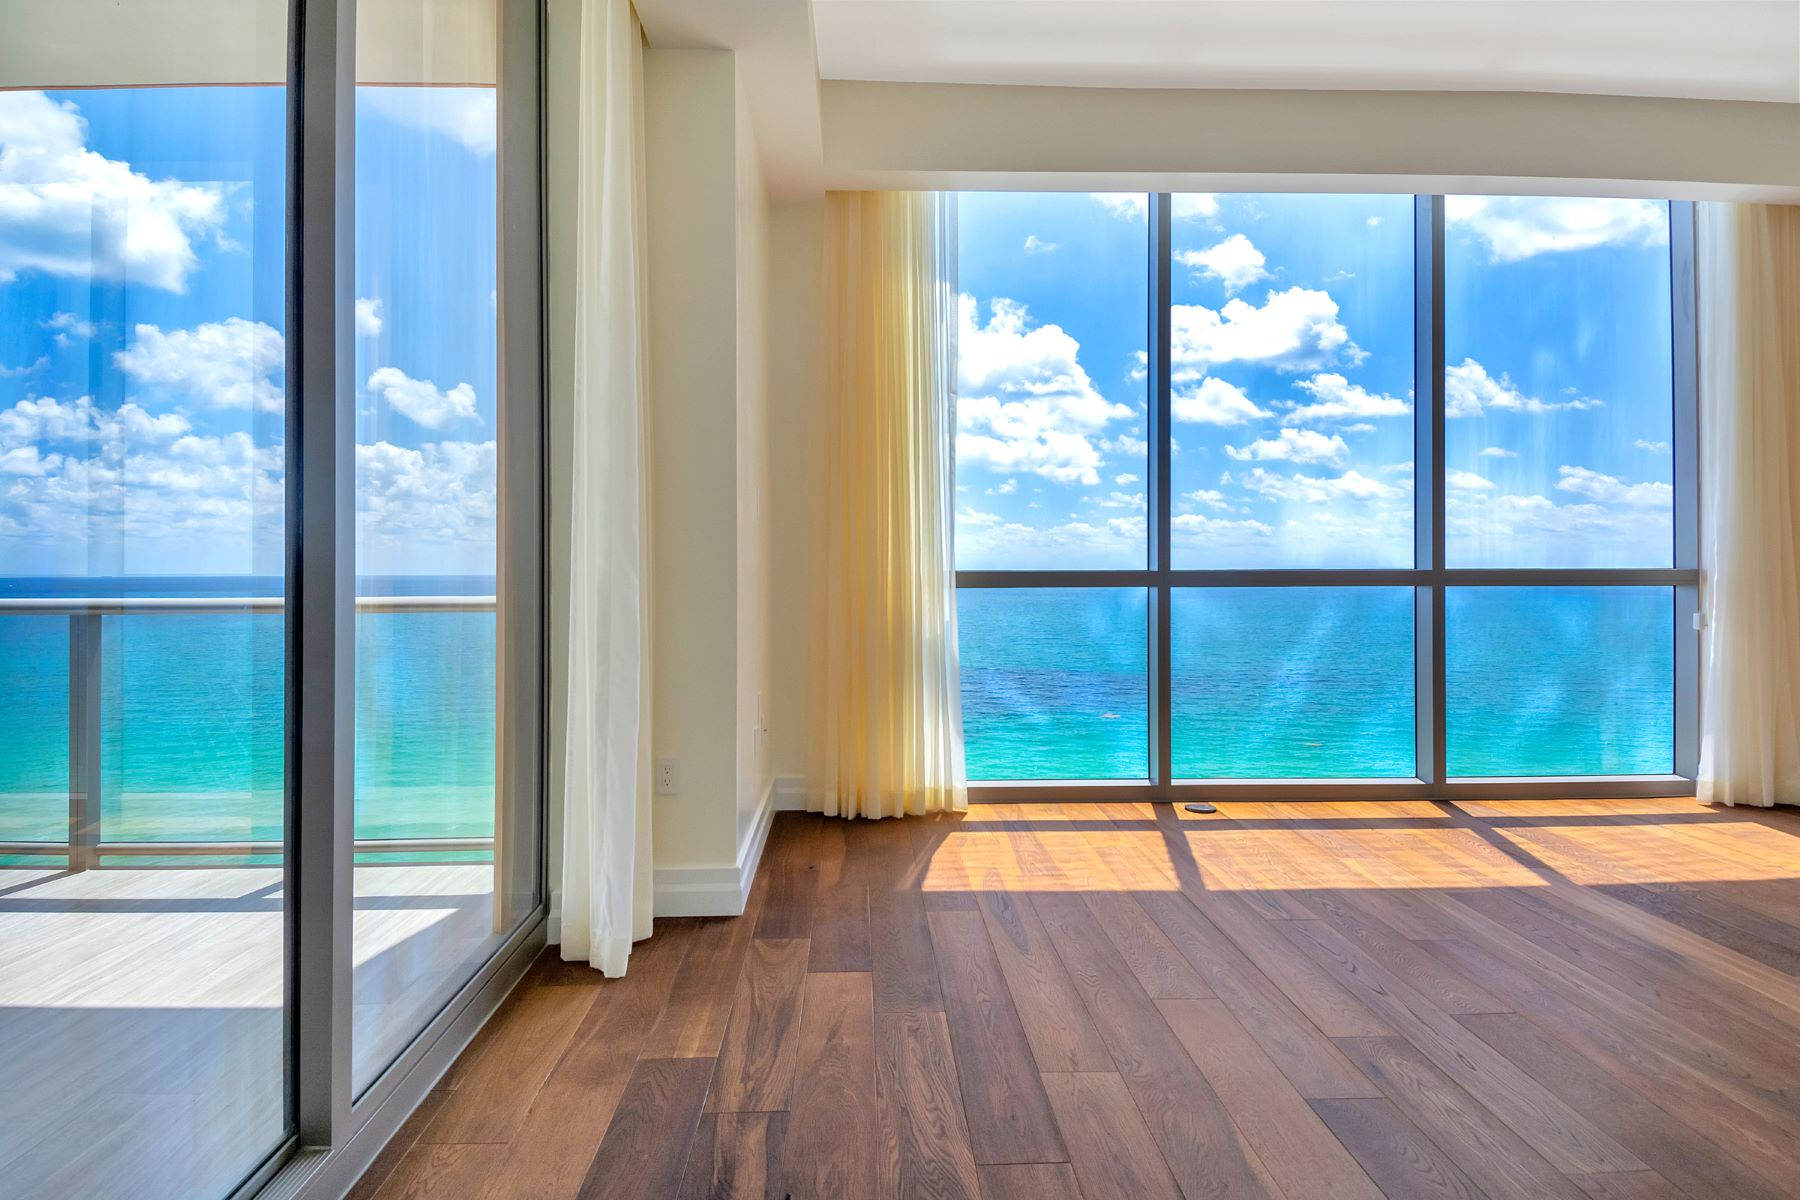 condominiums for Active at 17749 Collins Ave 1601 Sunny Isles Beach, Florida 33160 United States